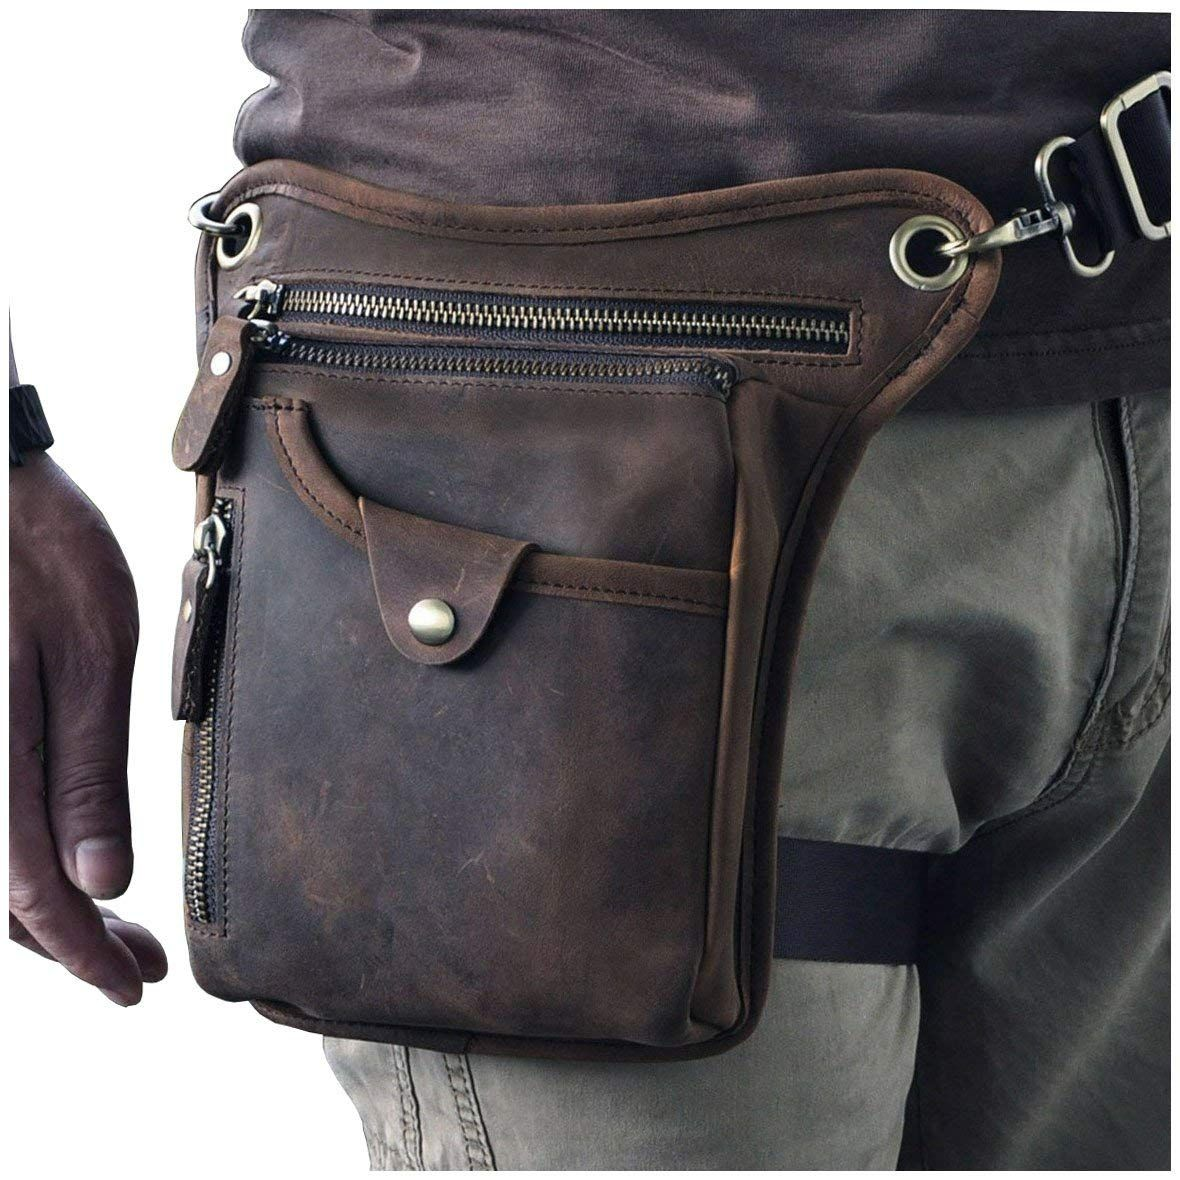 Men Belt Pouch Or Crossbody Bag Genuine Leather Holster Travel Accessories Black